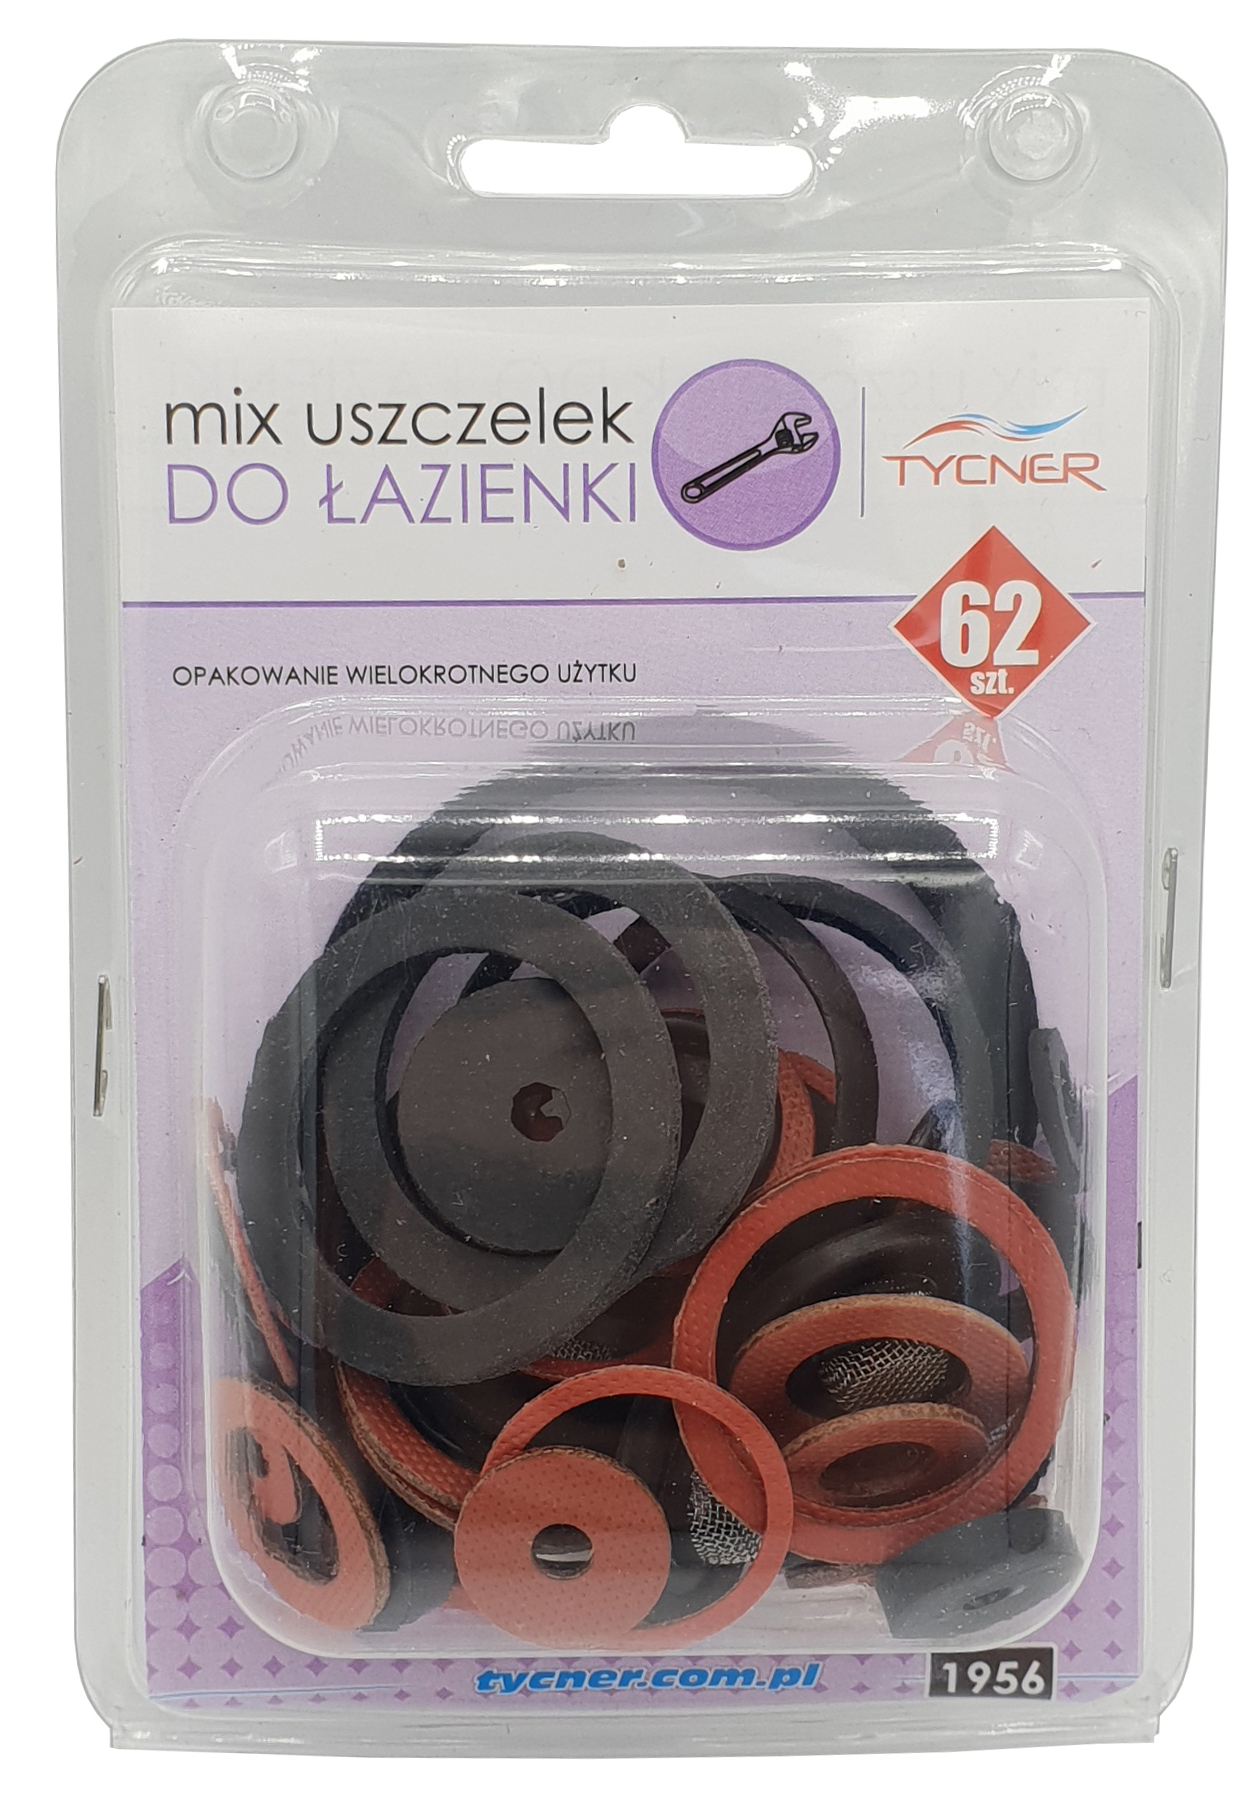 62 pcs of Bathroom Gaskets Universal Rubber Fibre Washer Set Various Sizes Types